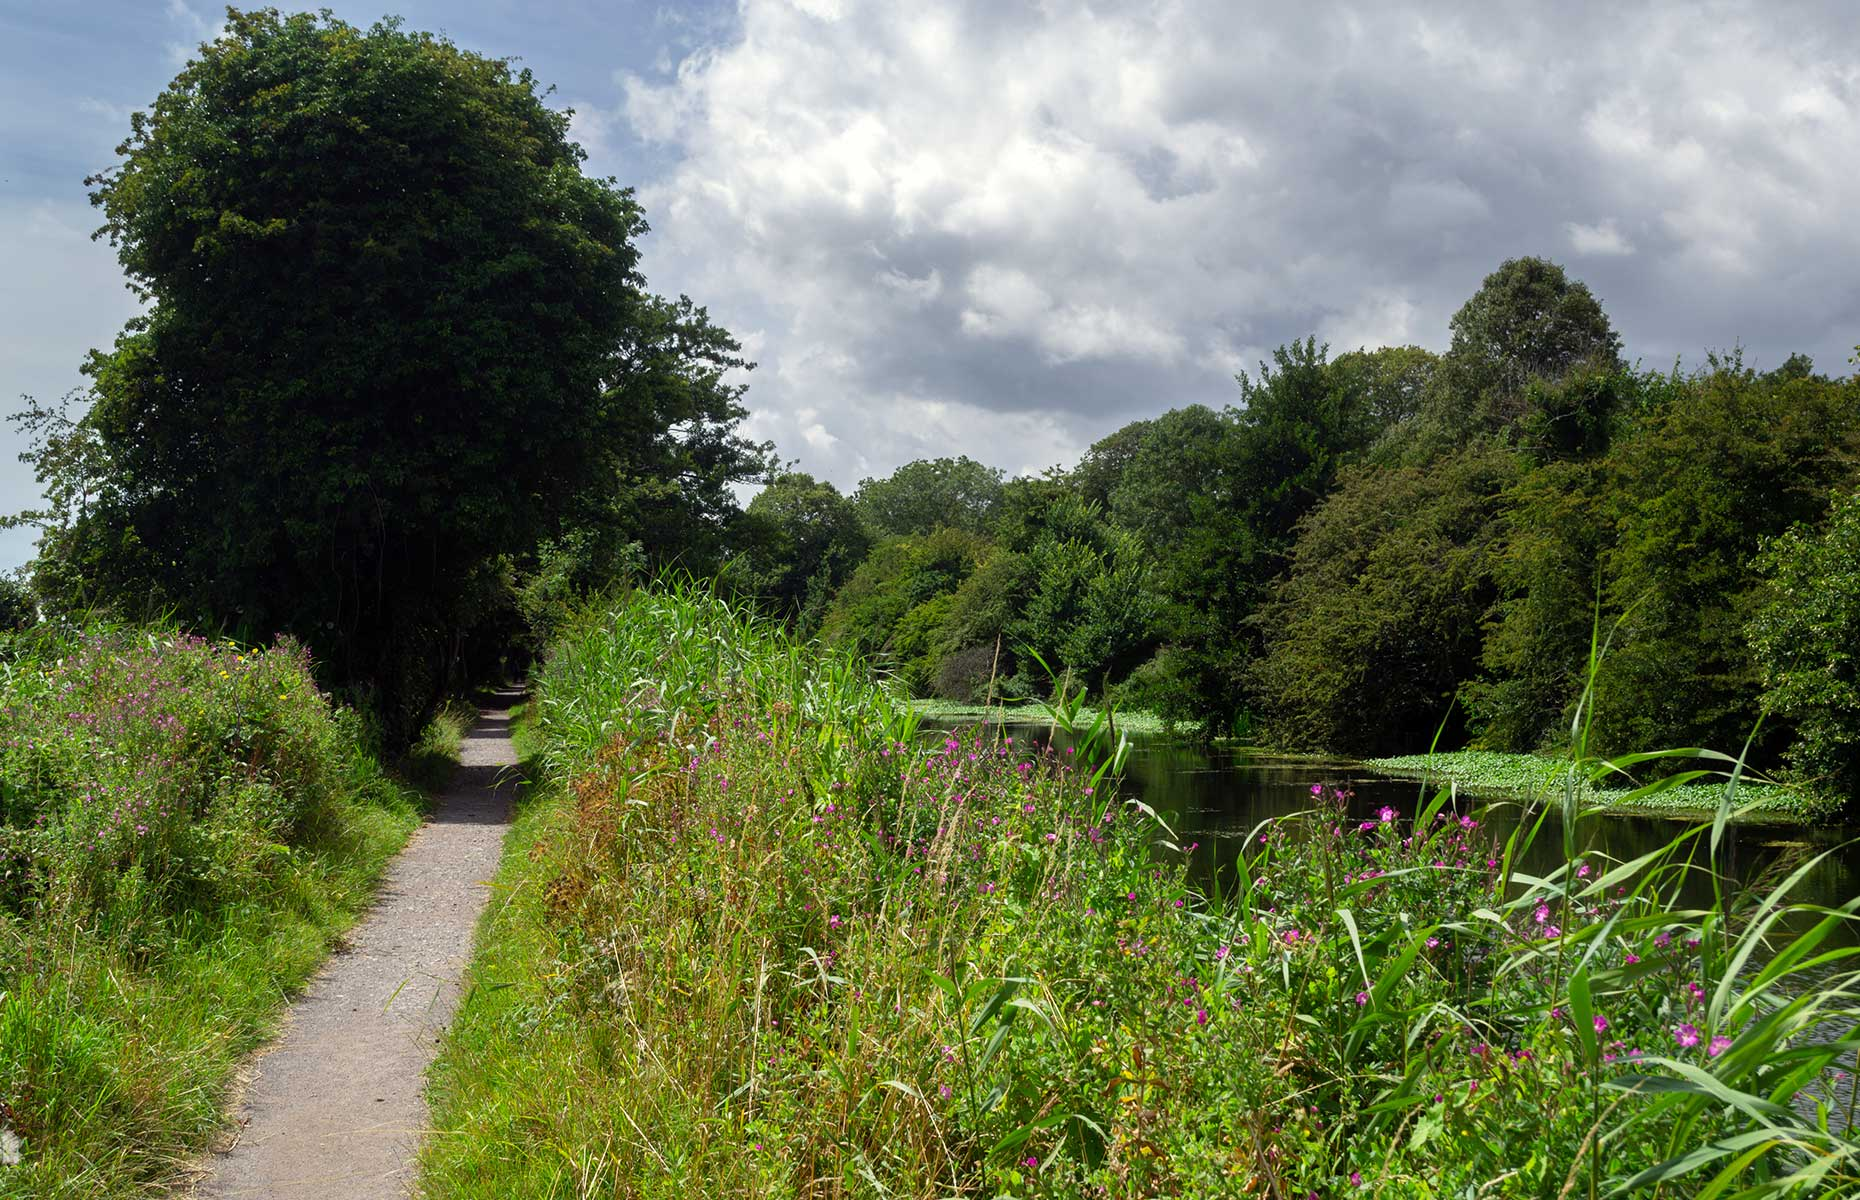 Royal Military Canal at Romney Marsh (Image: Veronique Stone/Shutterstock)